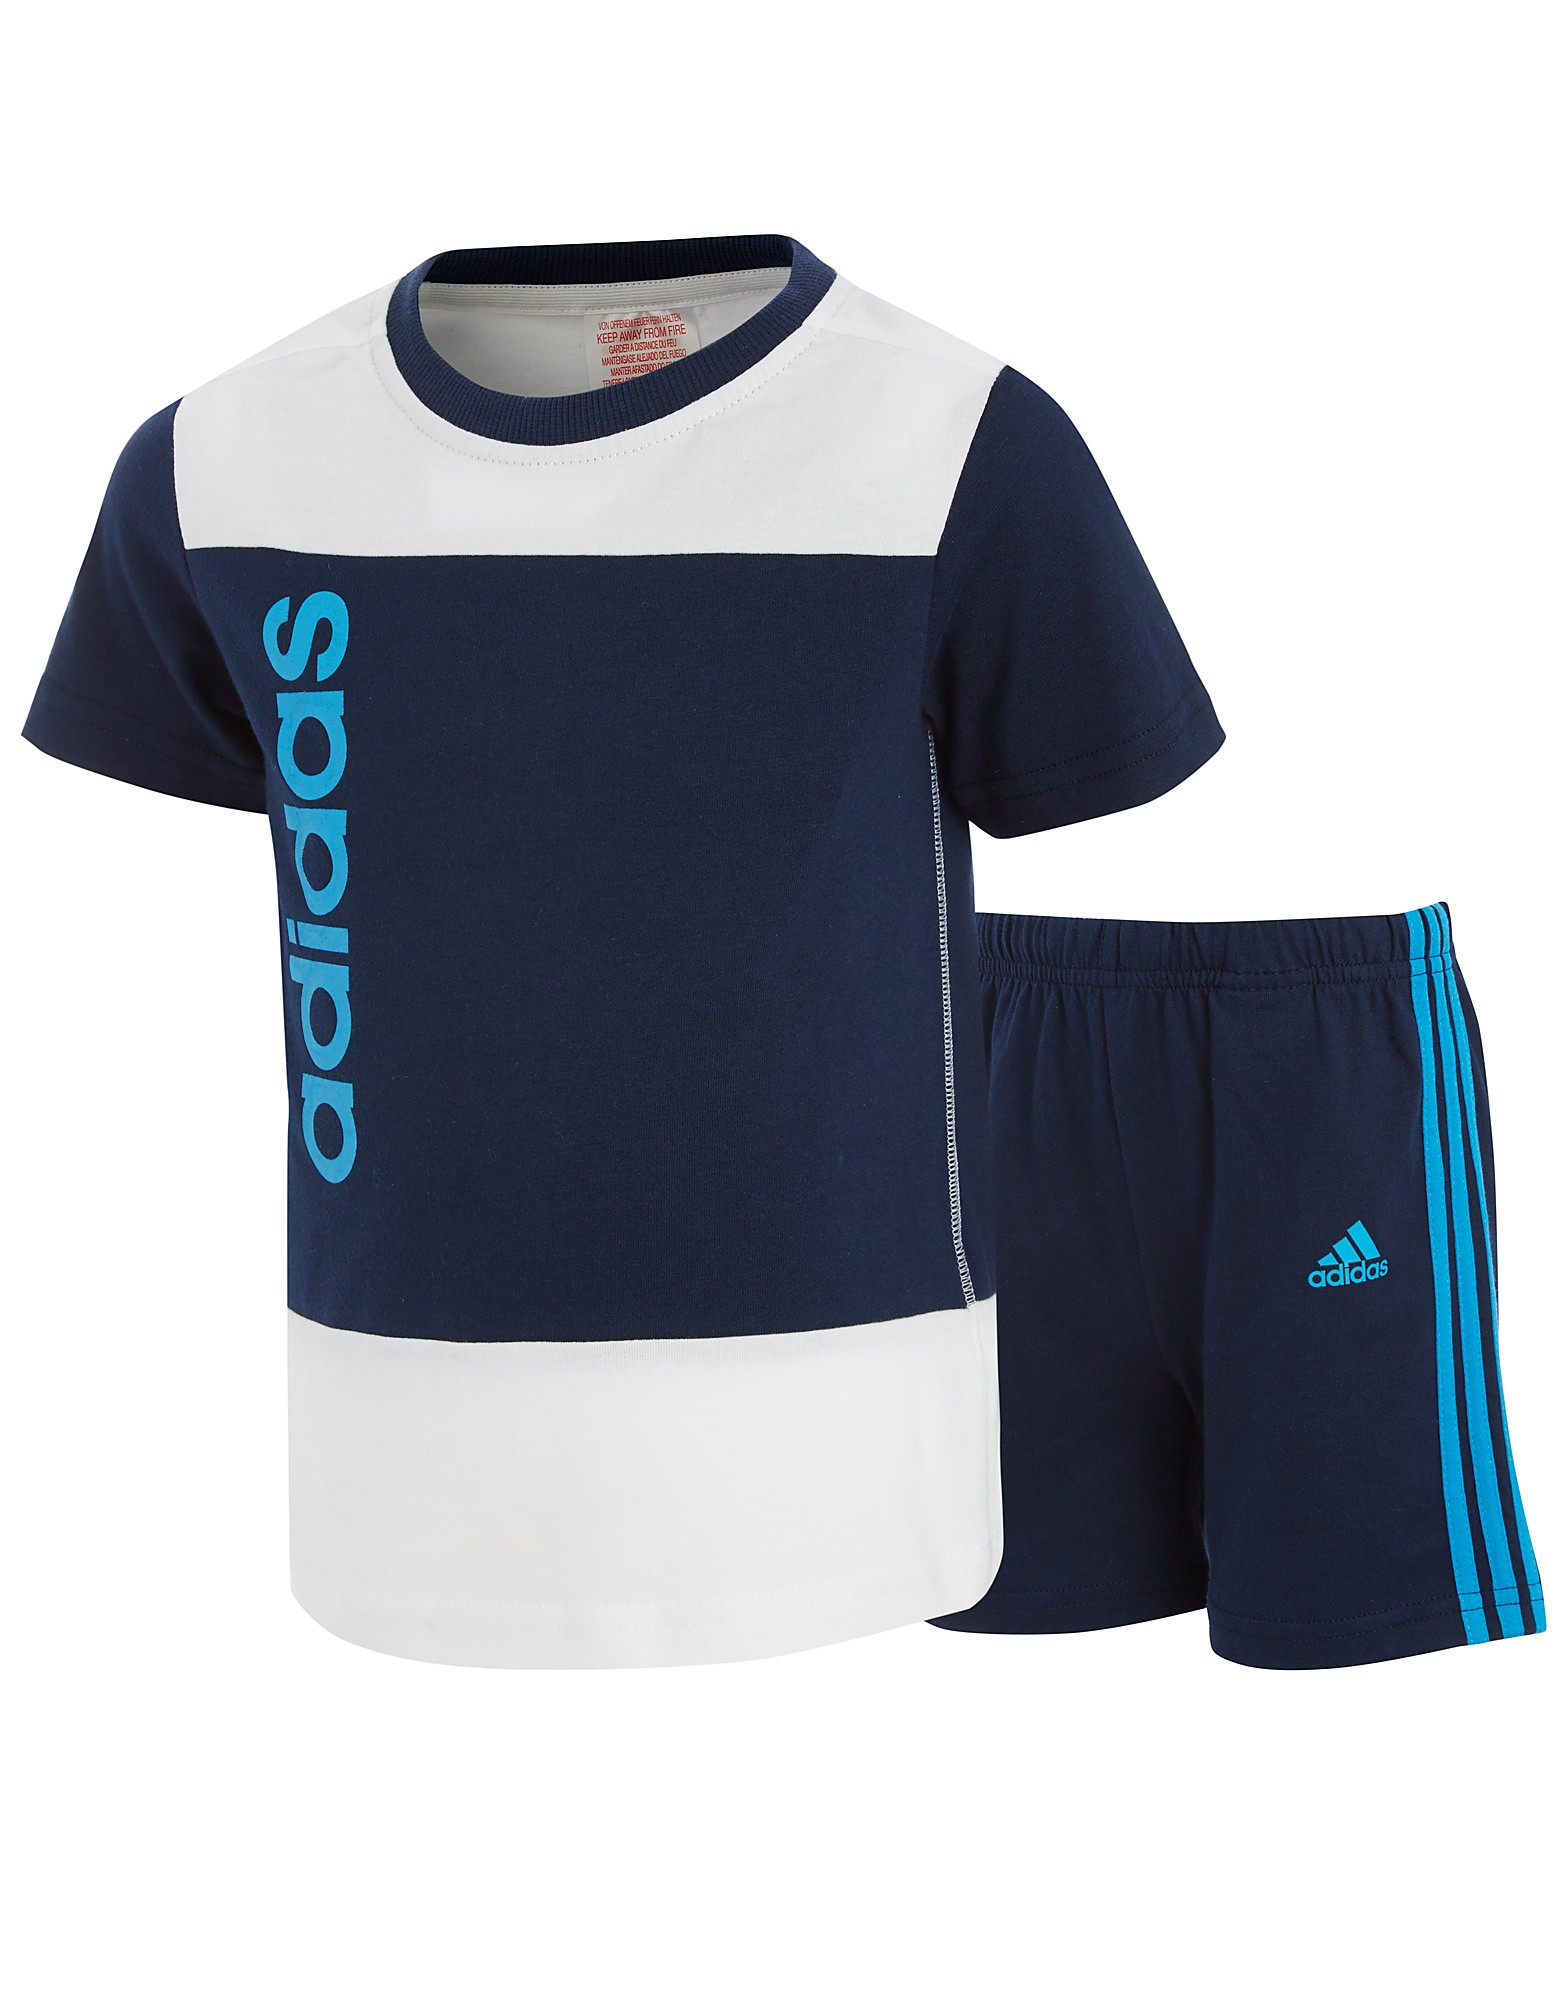 Adidas Linear T-Shirt/Shorts Set Infants product image